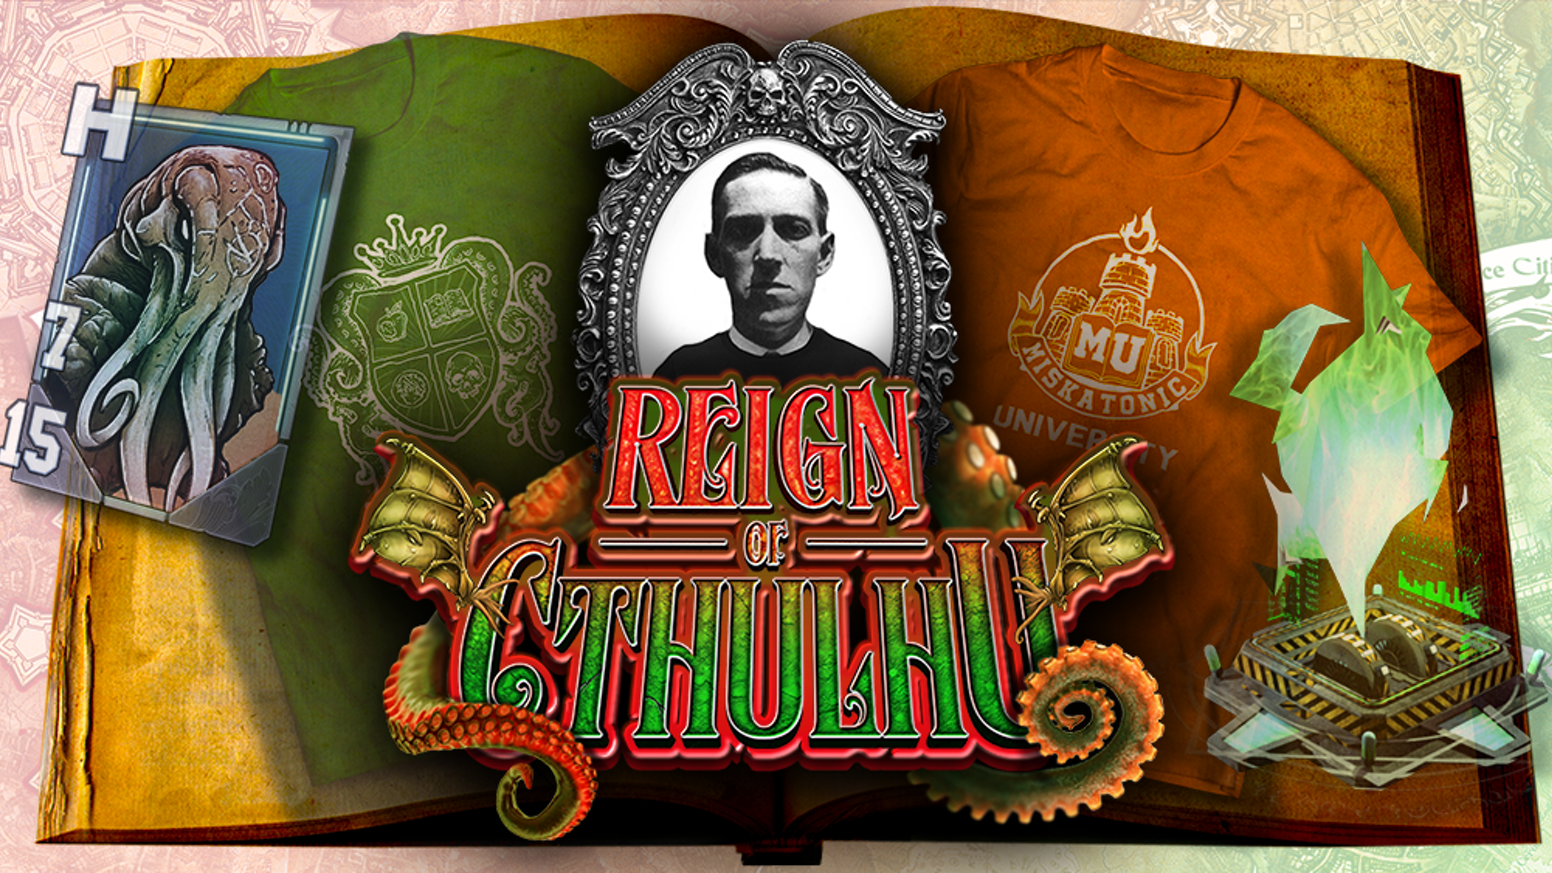 Reign of Cthulhu mashes t-shirts, phones, & augmented reality into a fun mixed reality RPG, where your neighborhood is your tabletop.